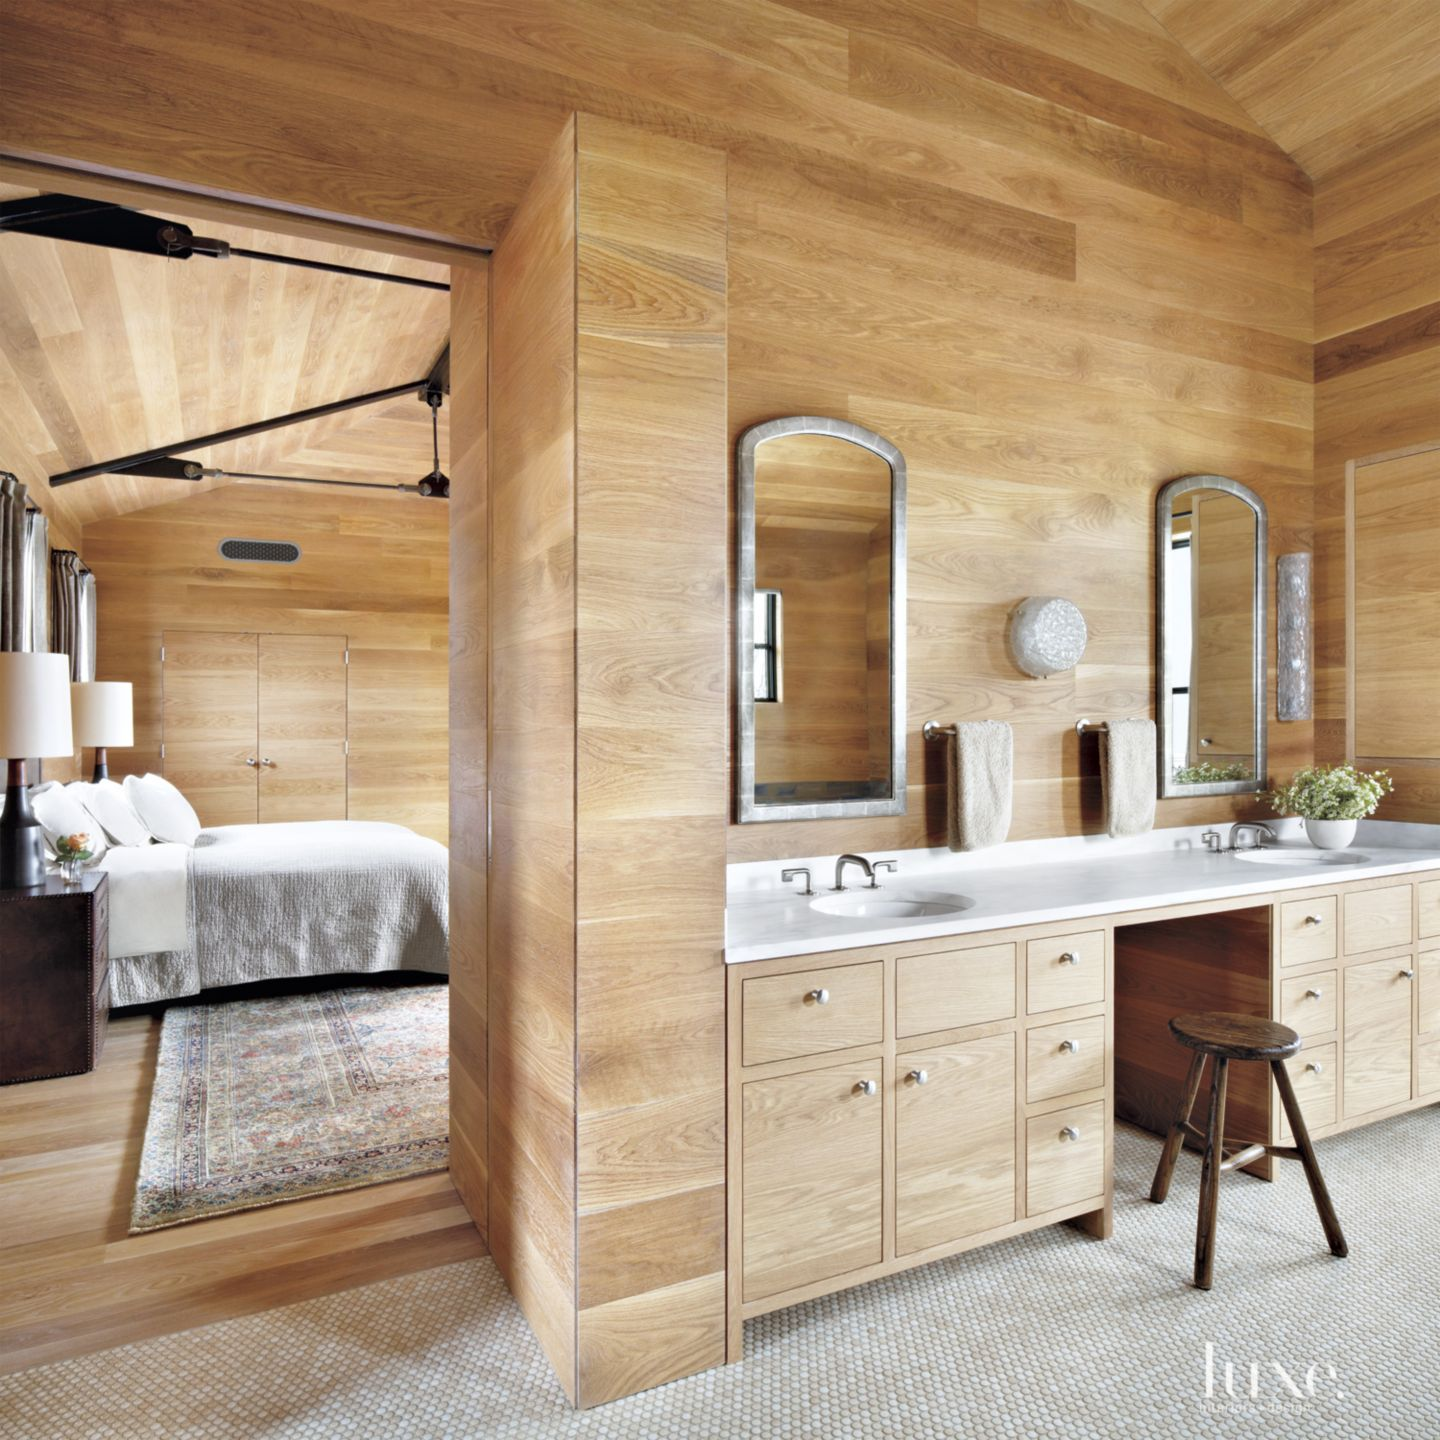 Contemporary White Oak Master Bathroom with Built-In Cabinetry